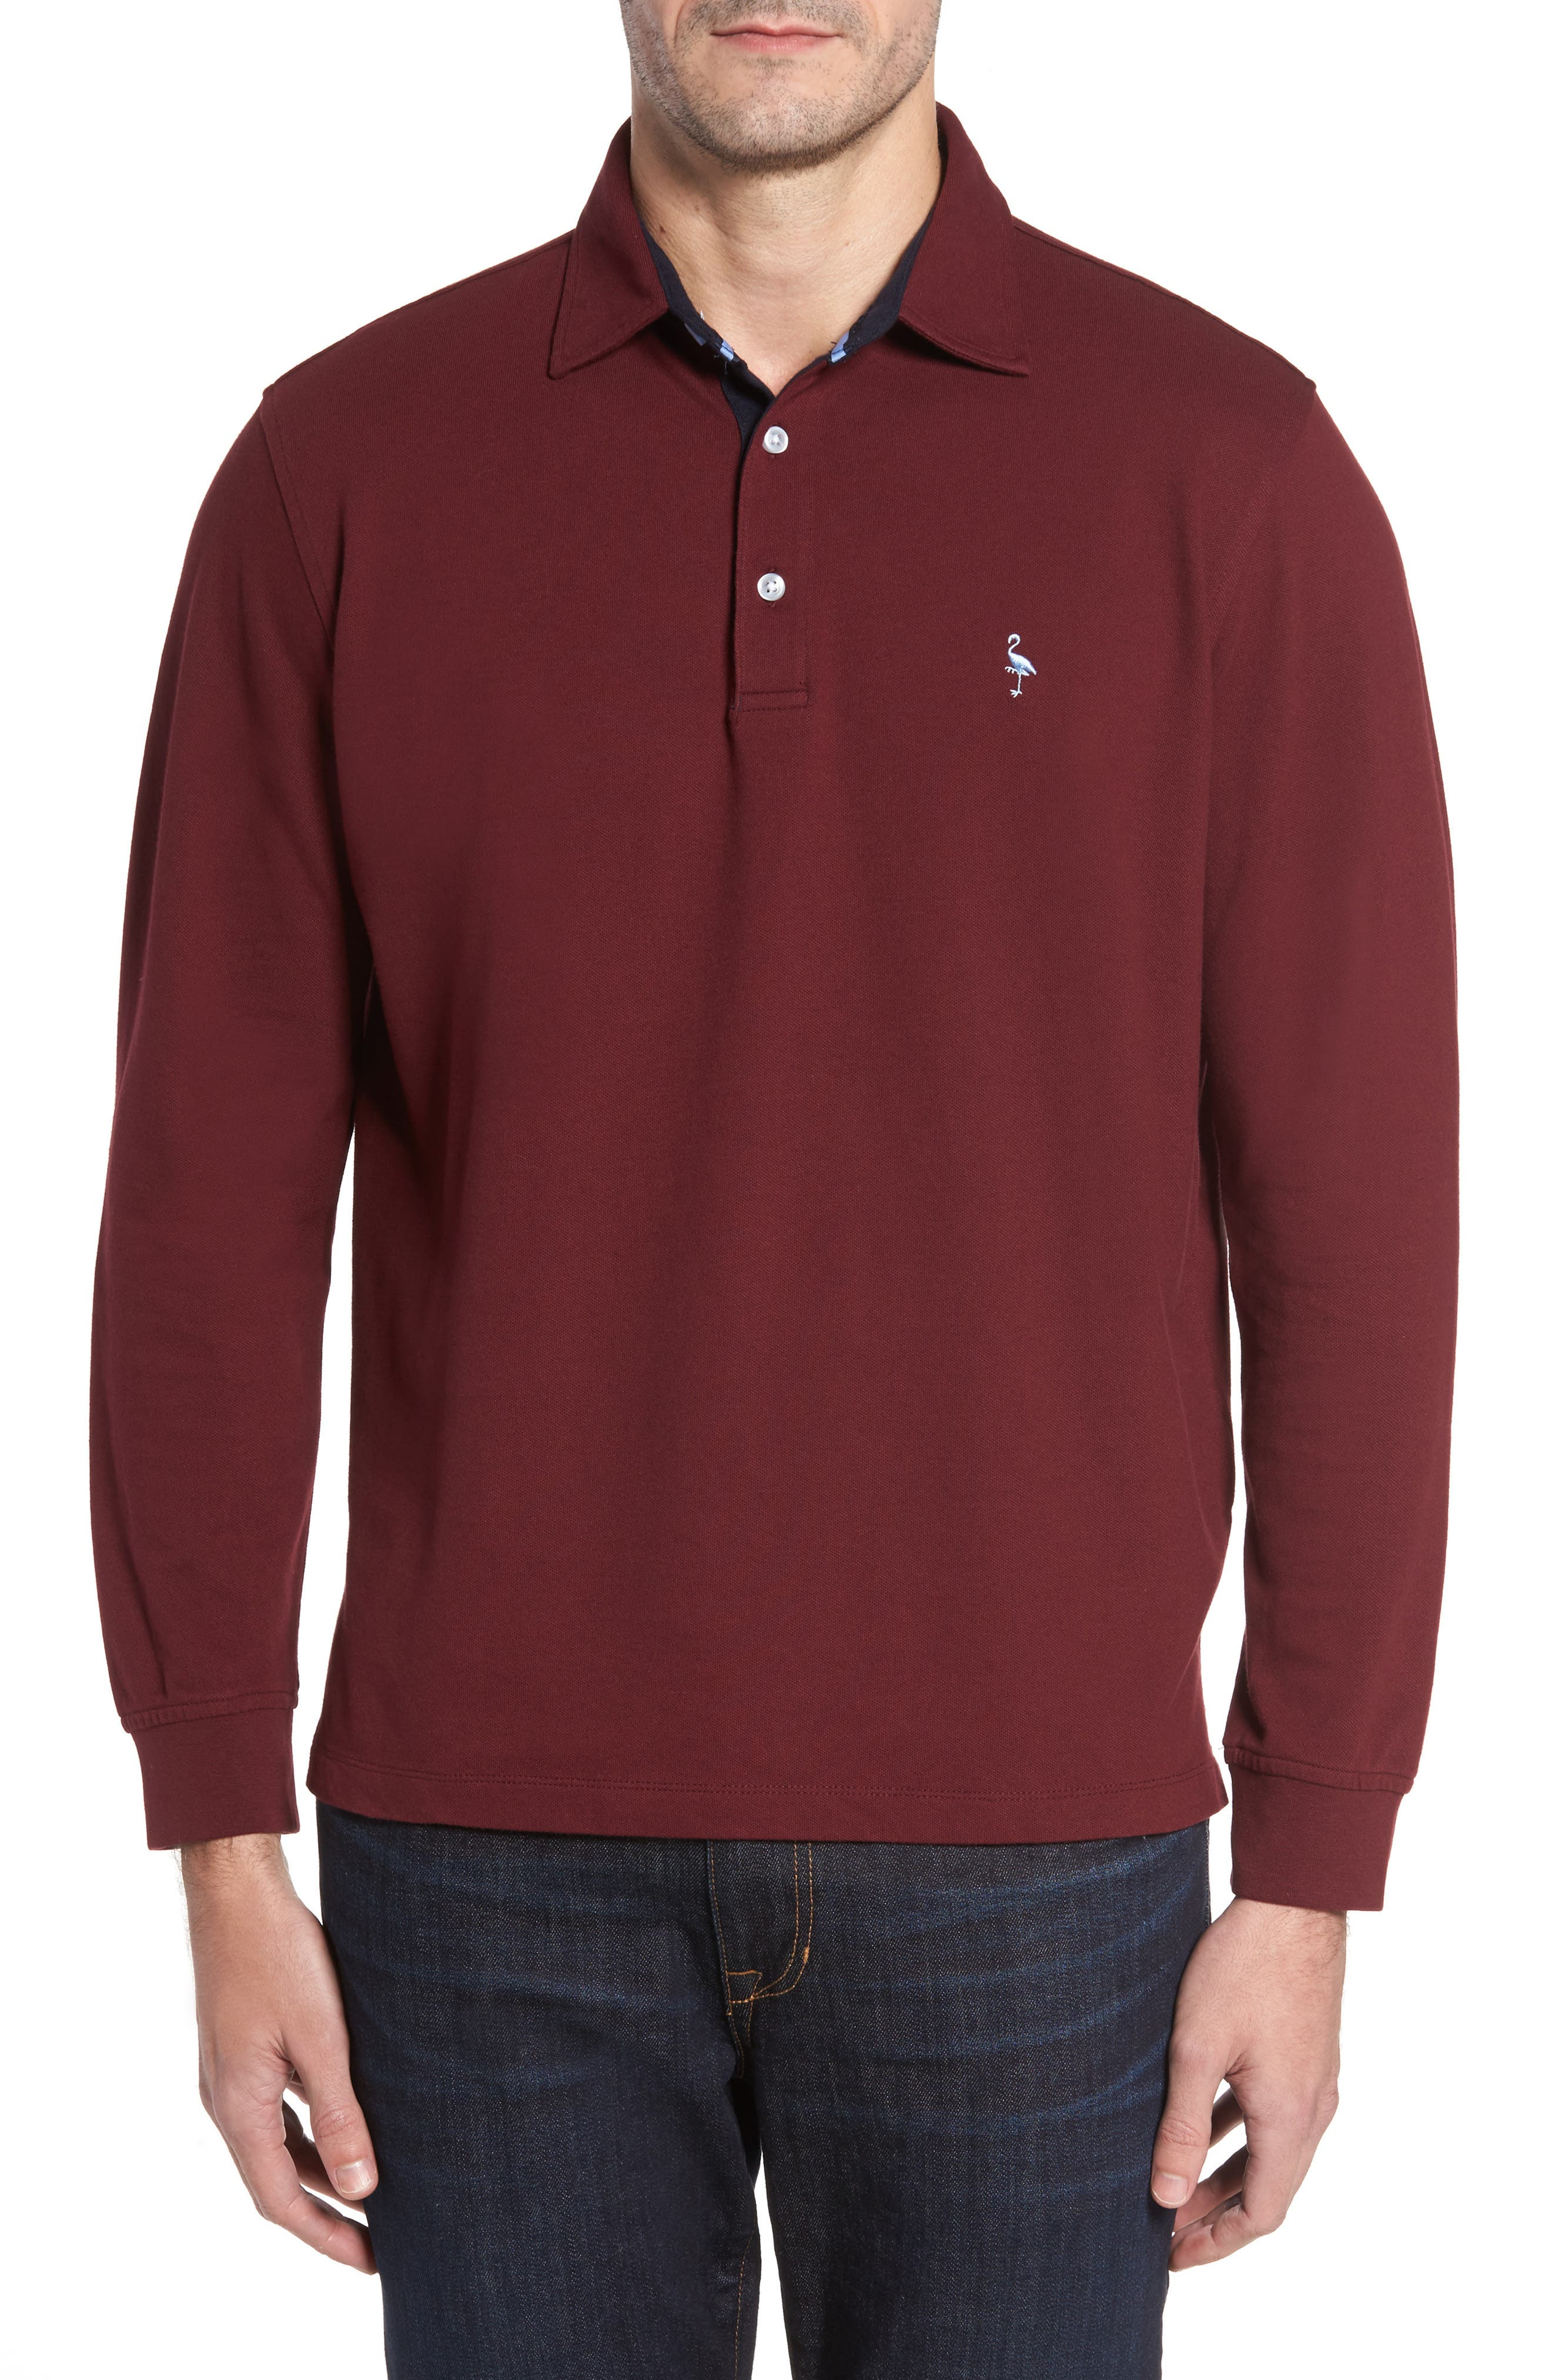 Alternate Image 1 Selected - TailorByrd Two-Tone Piqué Knit Polo